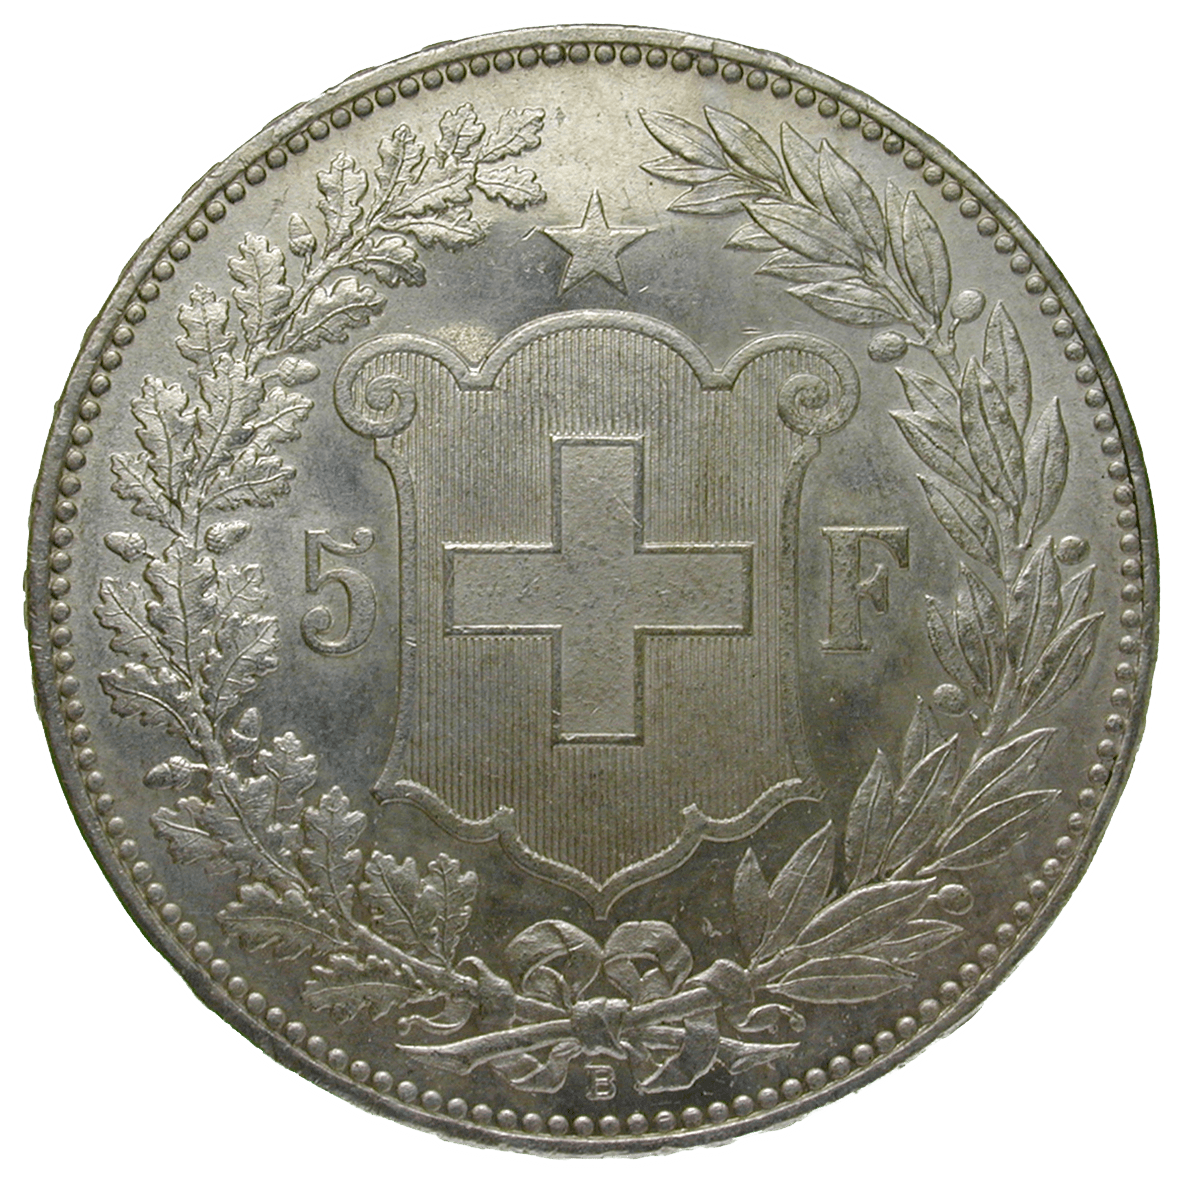 Swiss Confederation, 5 Franks 1889 (reverse)